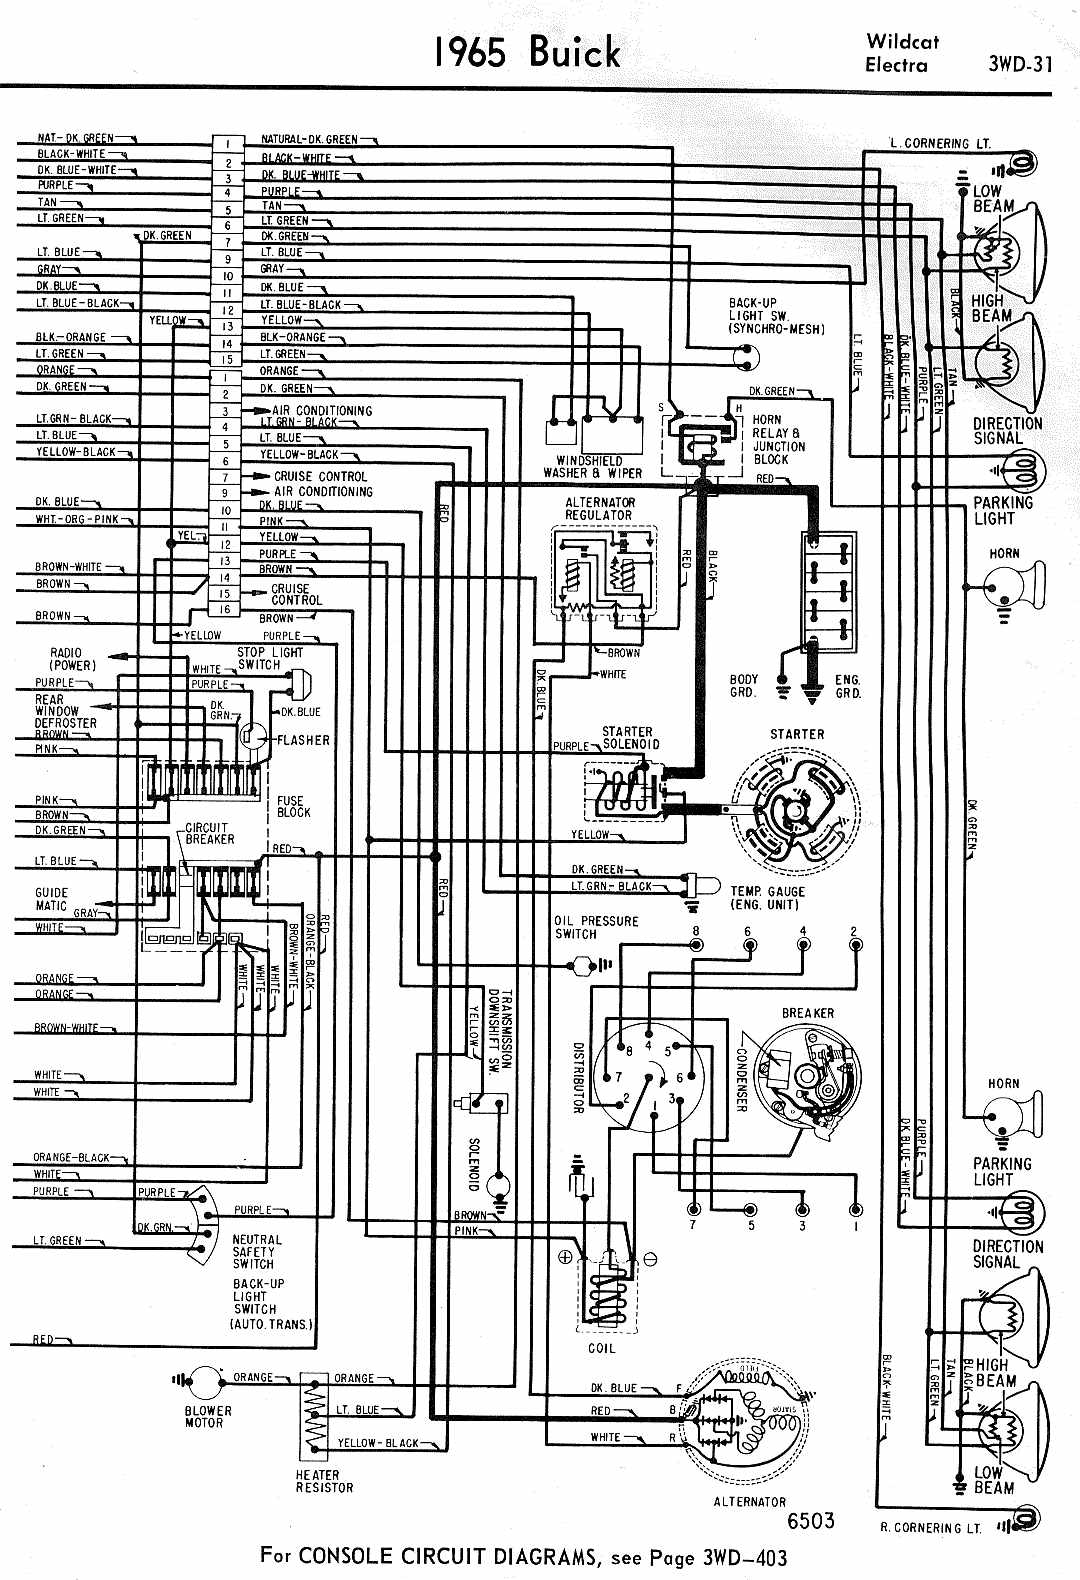 wiring diagram for 1965 buick wildcat and electra part 2?t=1508139226 buick car manuals, wiring diagrams pdf & fault codes 1966 buick skylark wiring diagram at crackthecode.co